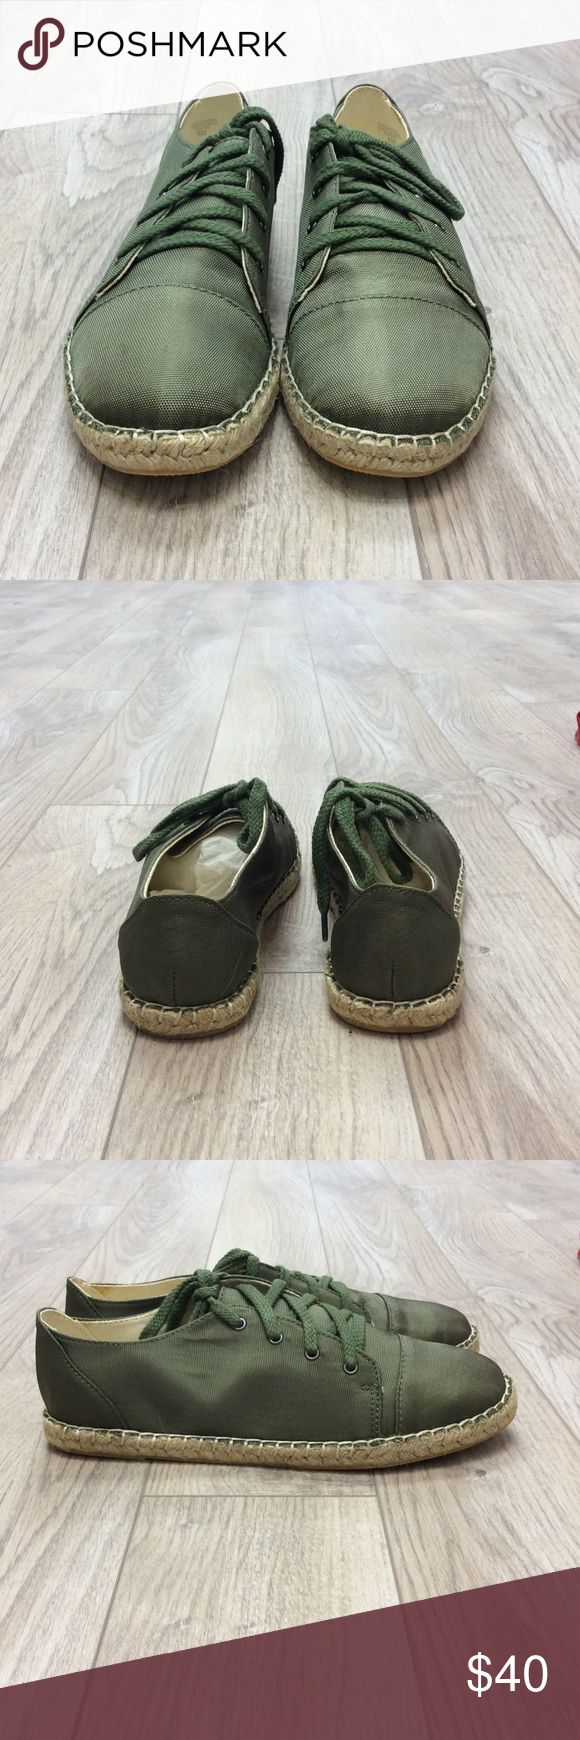 New with box espadrille shoes Army Green fabric Espadrille Shoemint Shoes Espadrilles